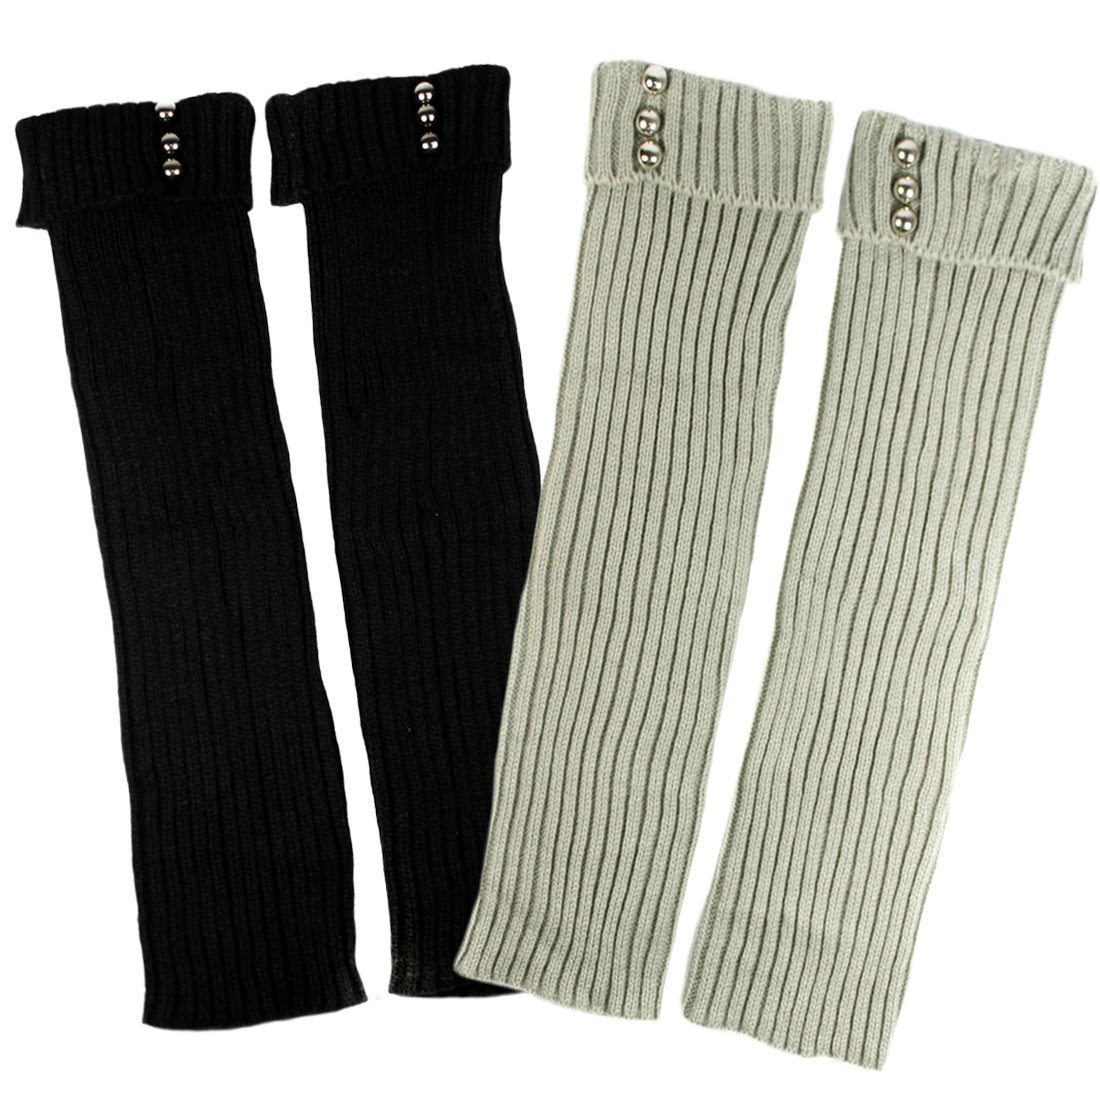 kilofly Leg Warmers Value Pack [Set of 2 Pairs], Solid with Studs Solid with Studs - Black Grey FTW401set2A